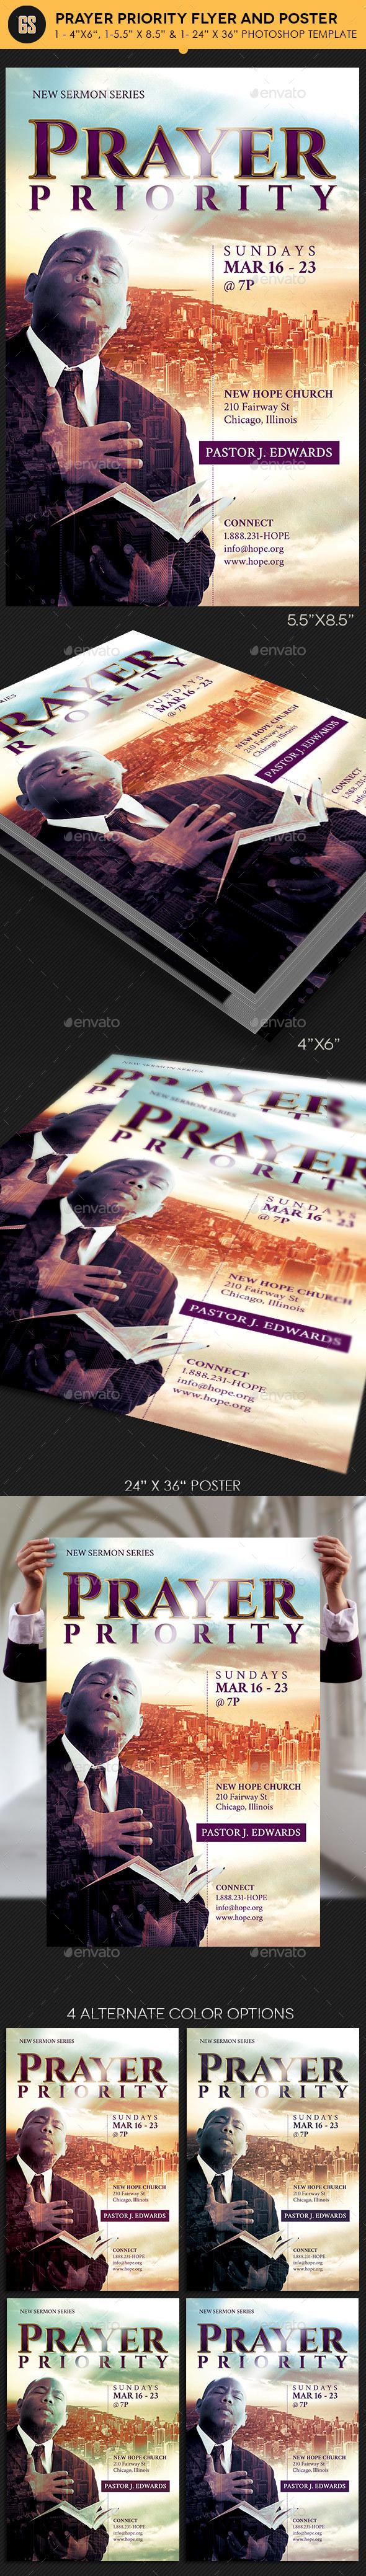 Prayer Priority Flyer Poster Template - Church Flyers